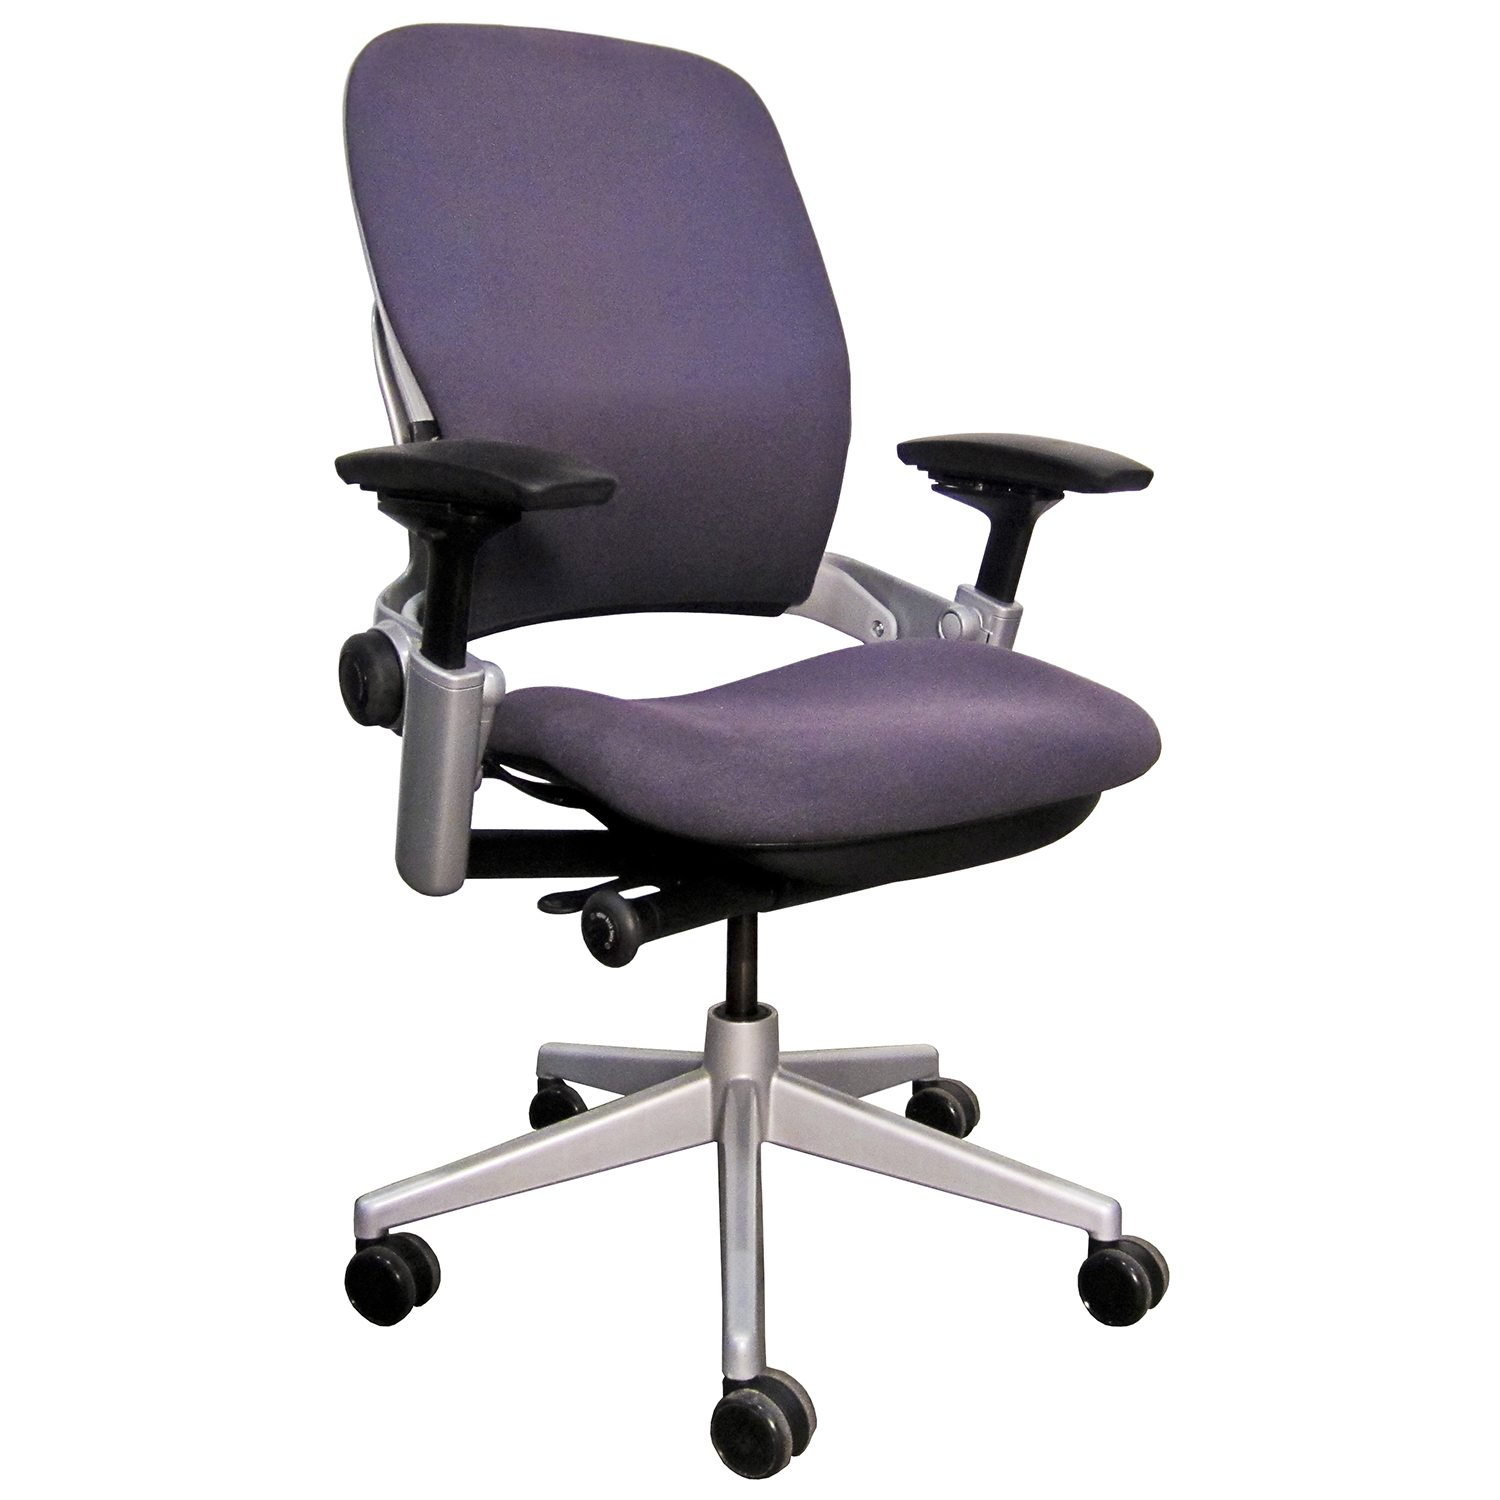 steelcase leap chair walmart bath v2 used task purple national